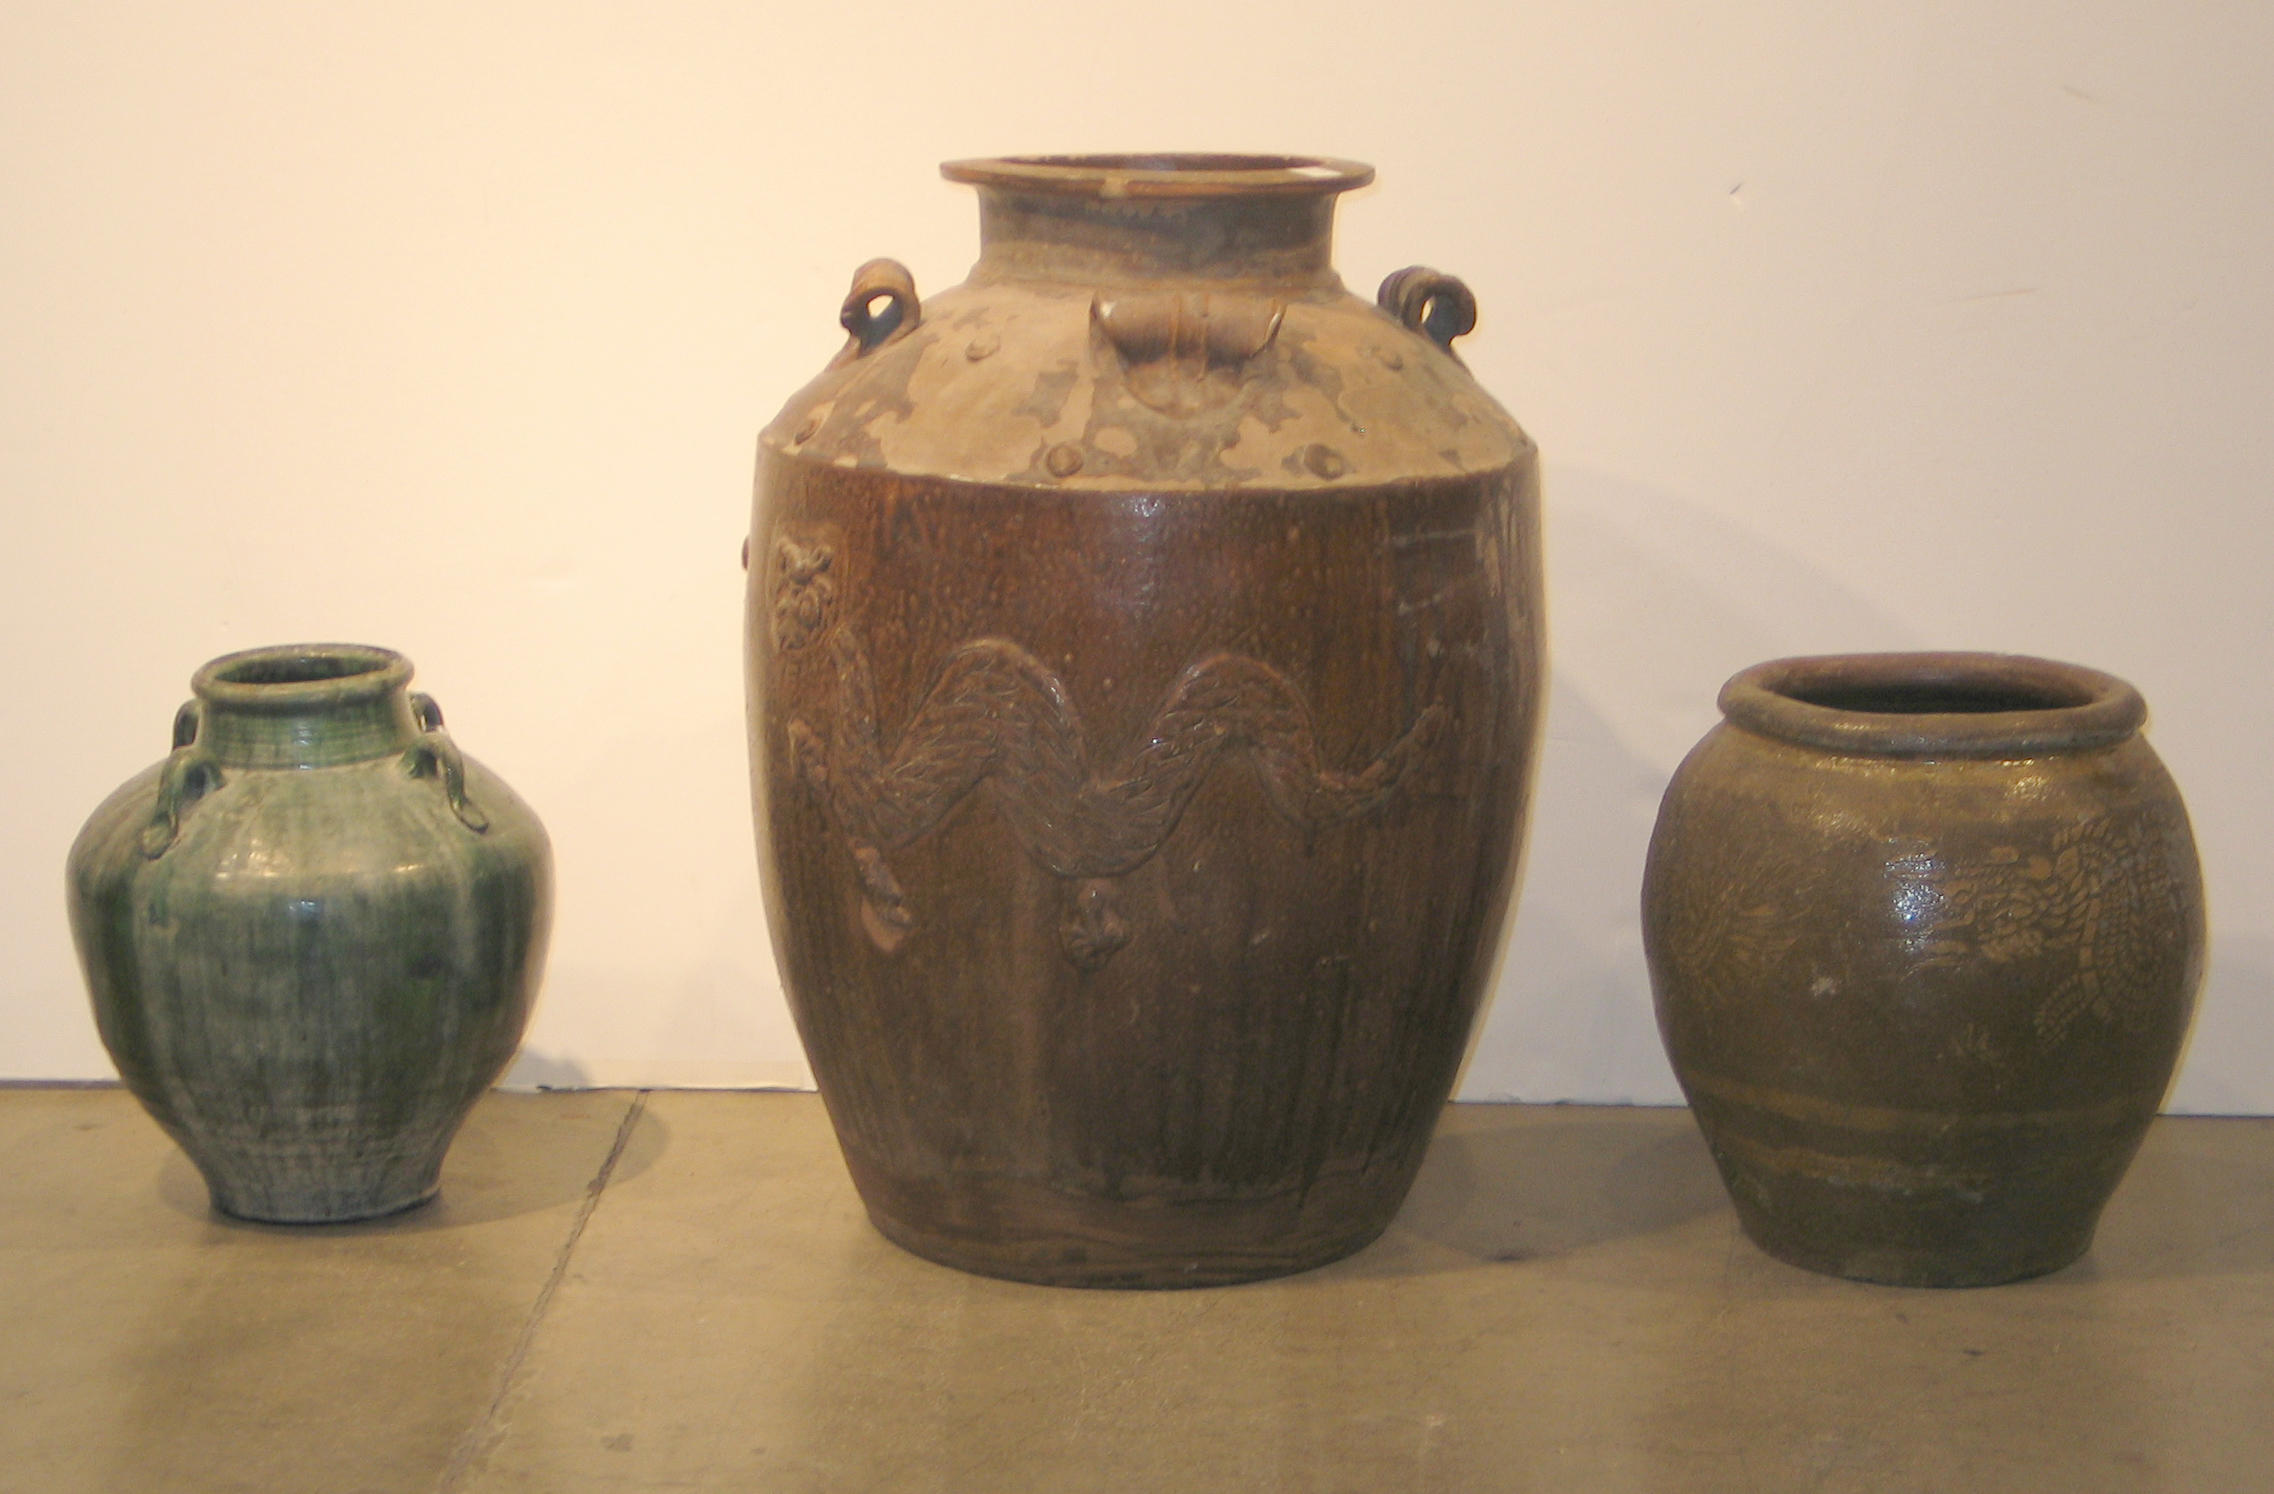 Three glazed pottery trade jars